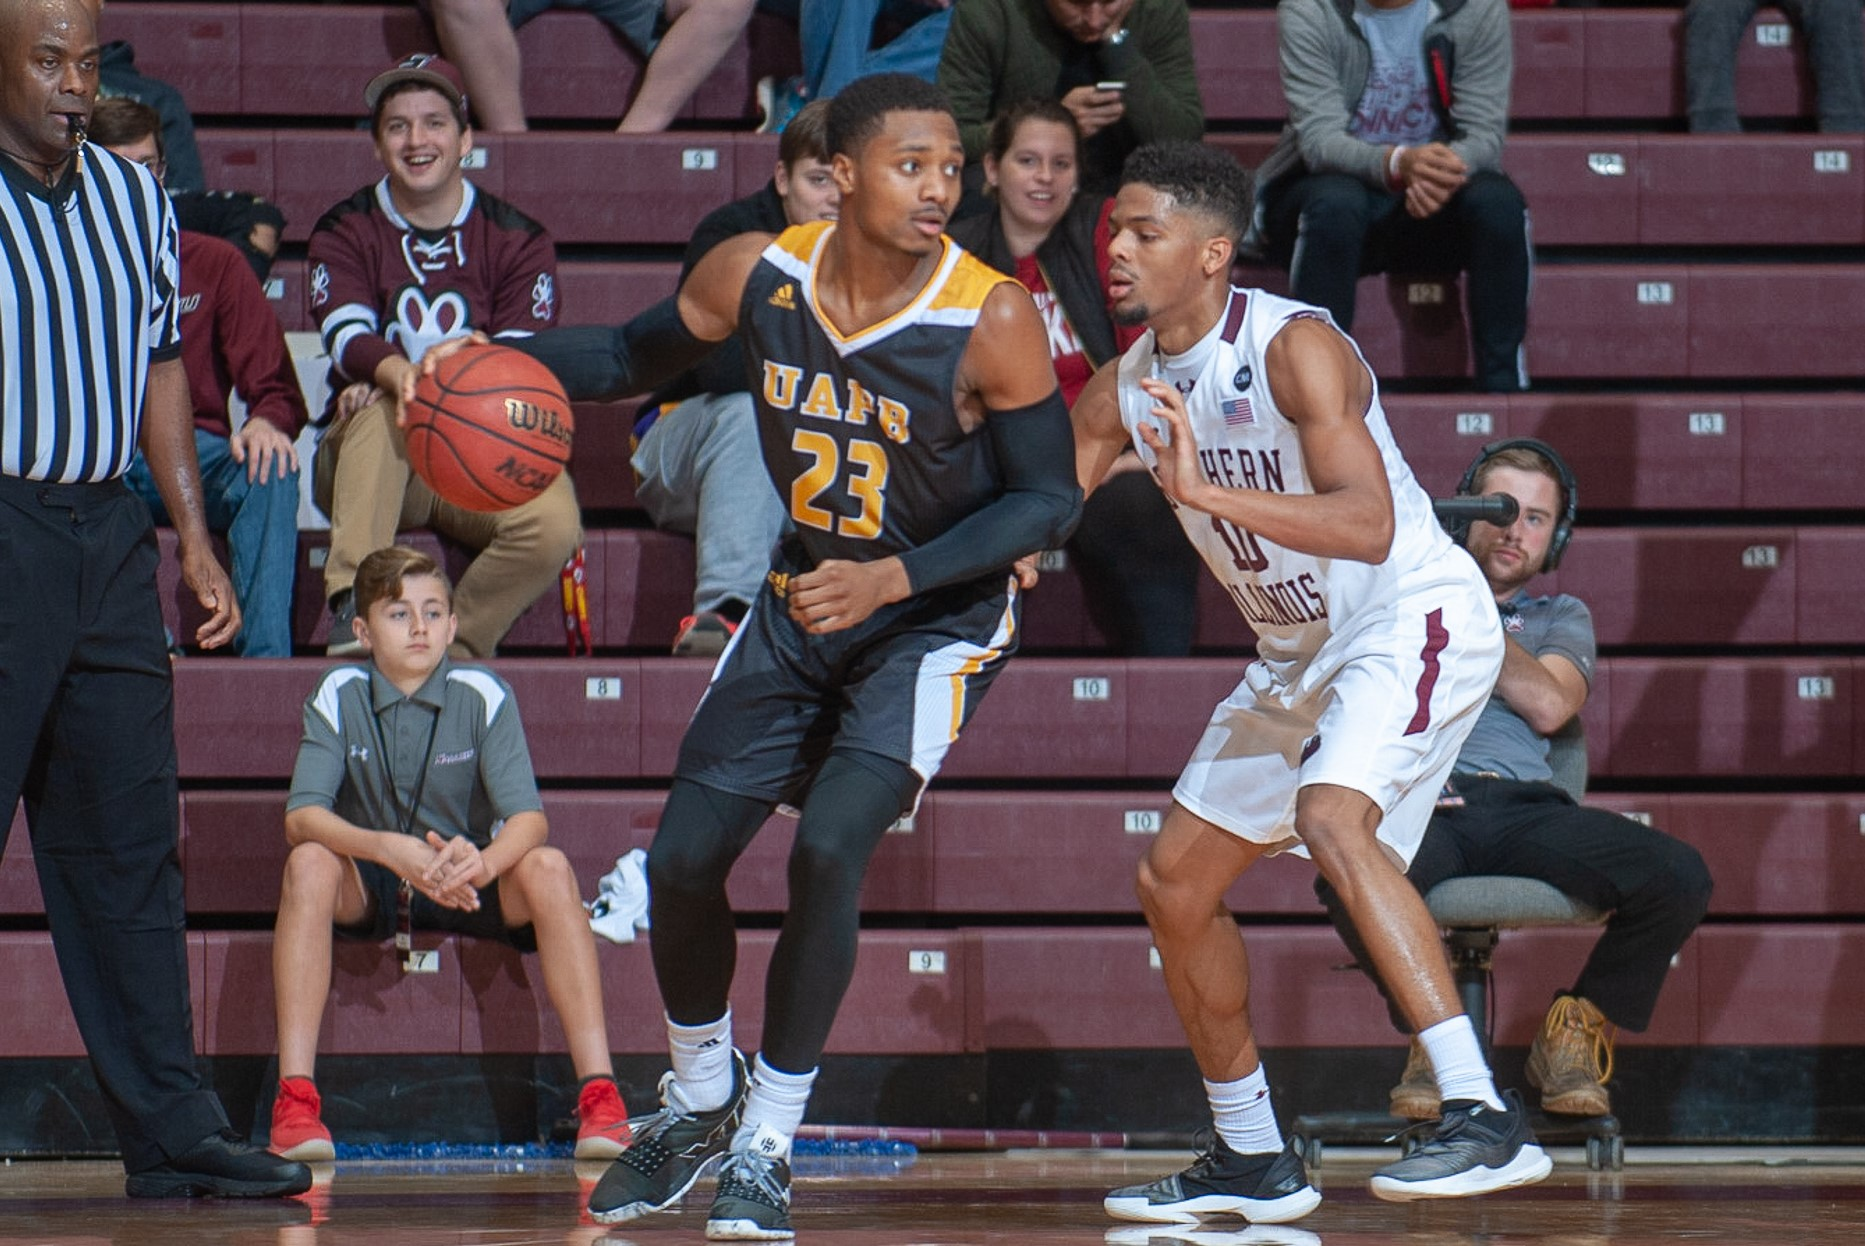 Martaveous McKnight scored a game-high 27 points in game two of the Las Vegas Invitational vs. Massachusetts.